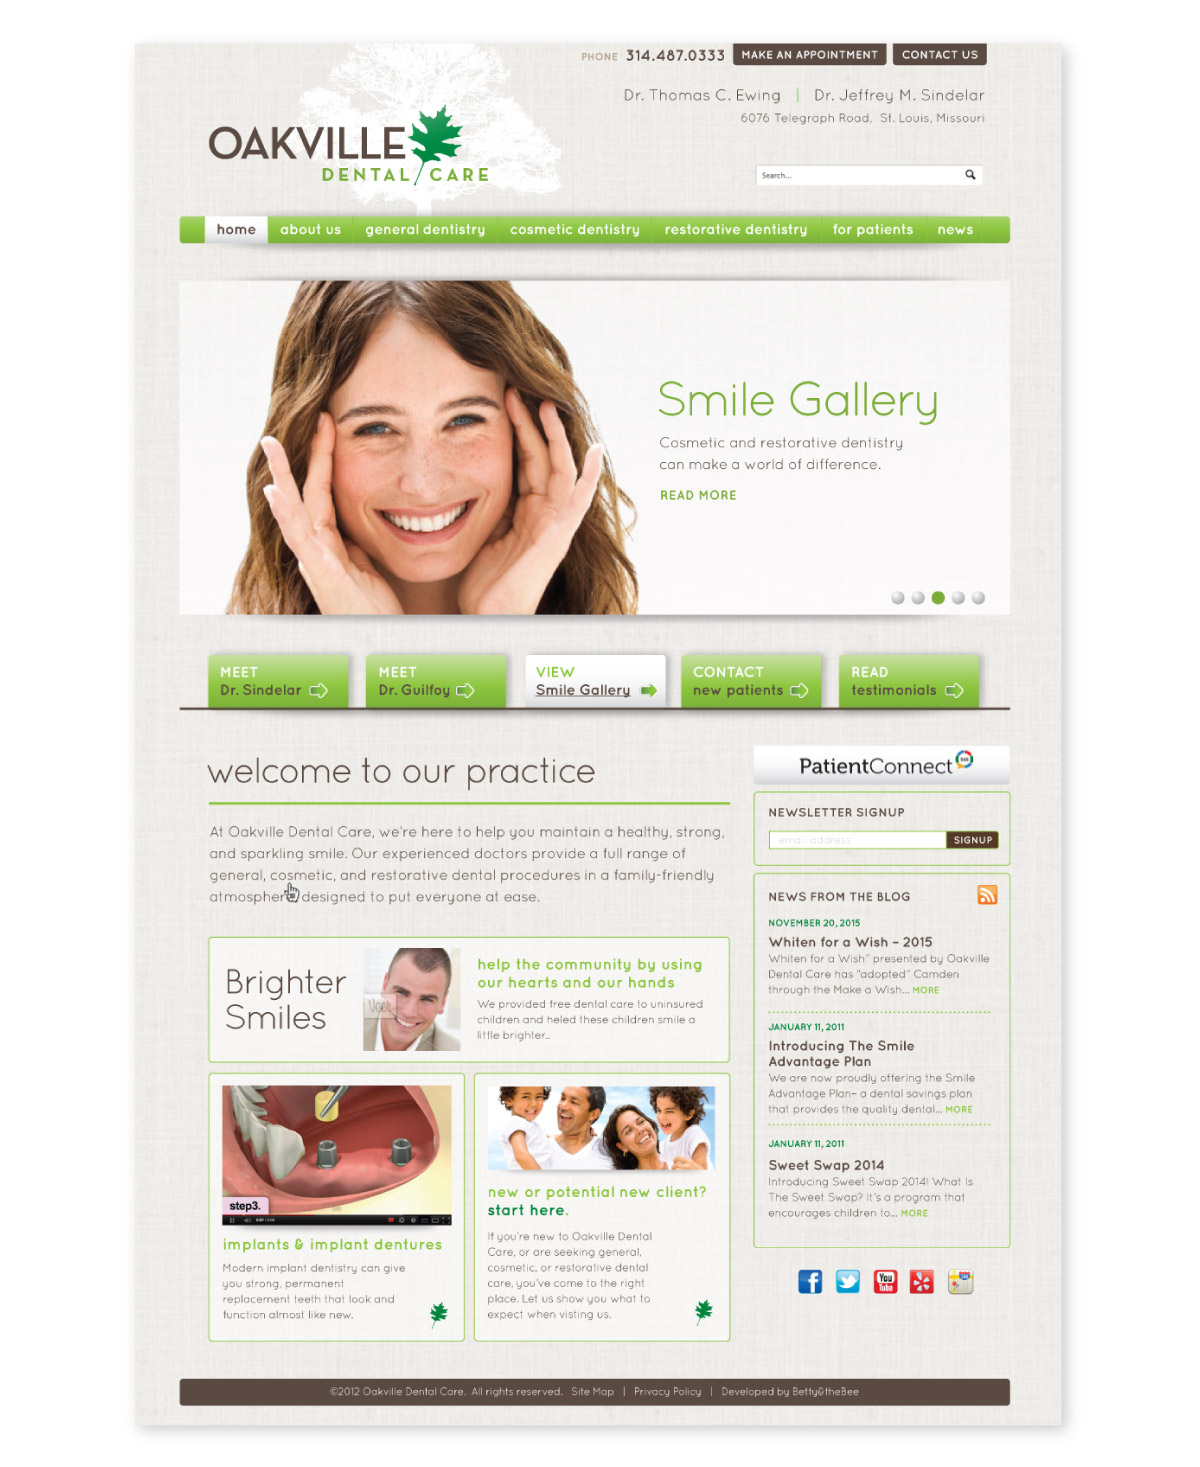 Oakville website landing page